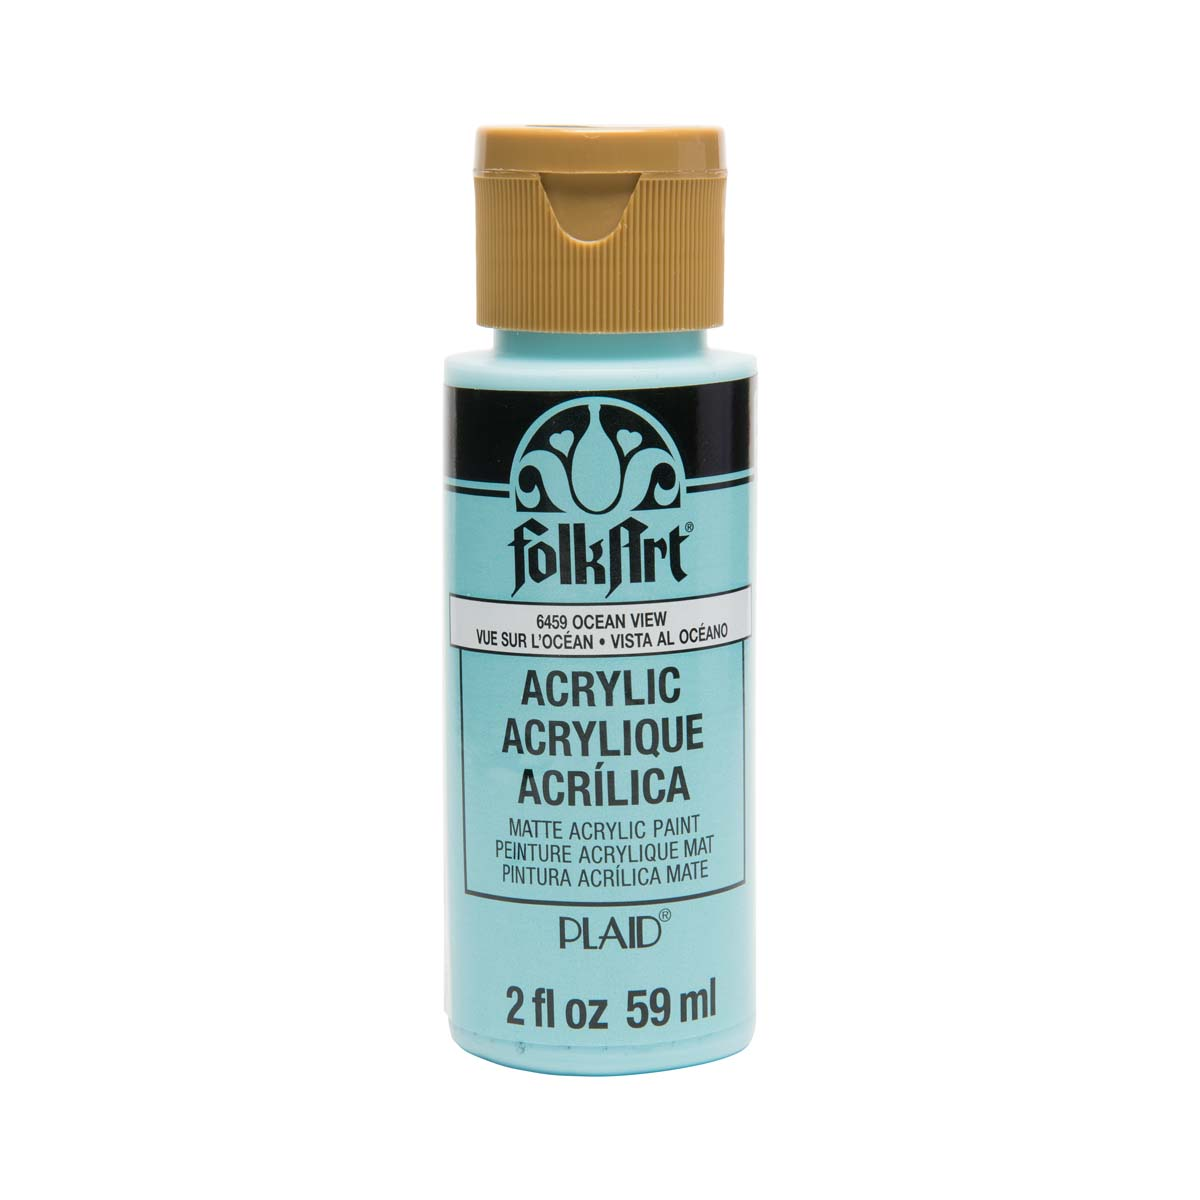 FolkArt ® Acrylic Colors - Ocean View, 2 oz. - 6459